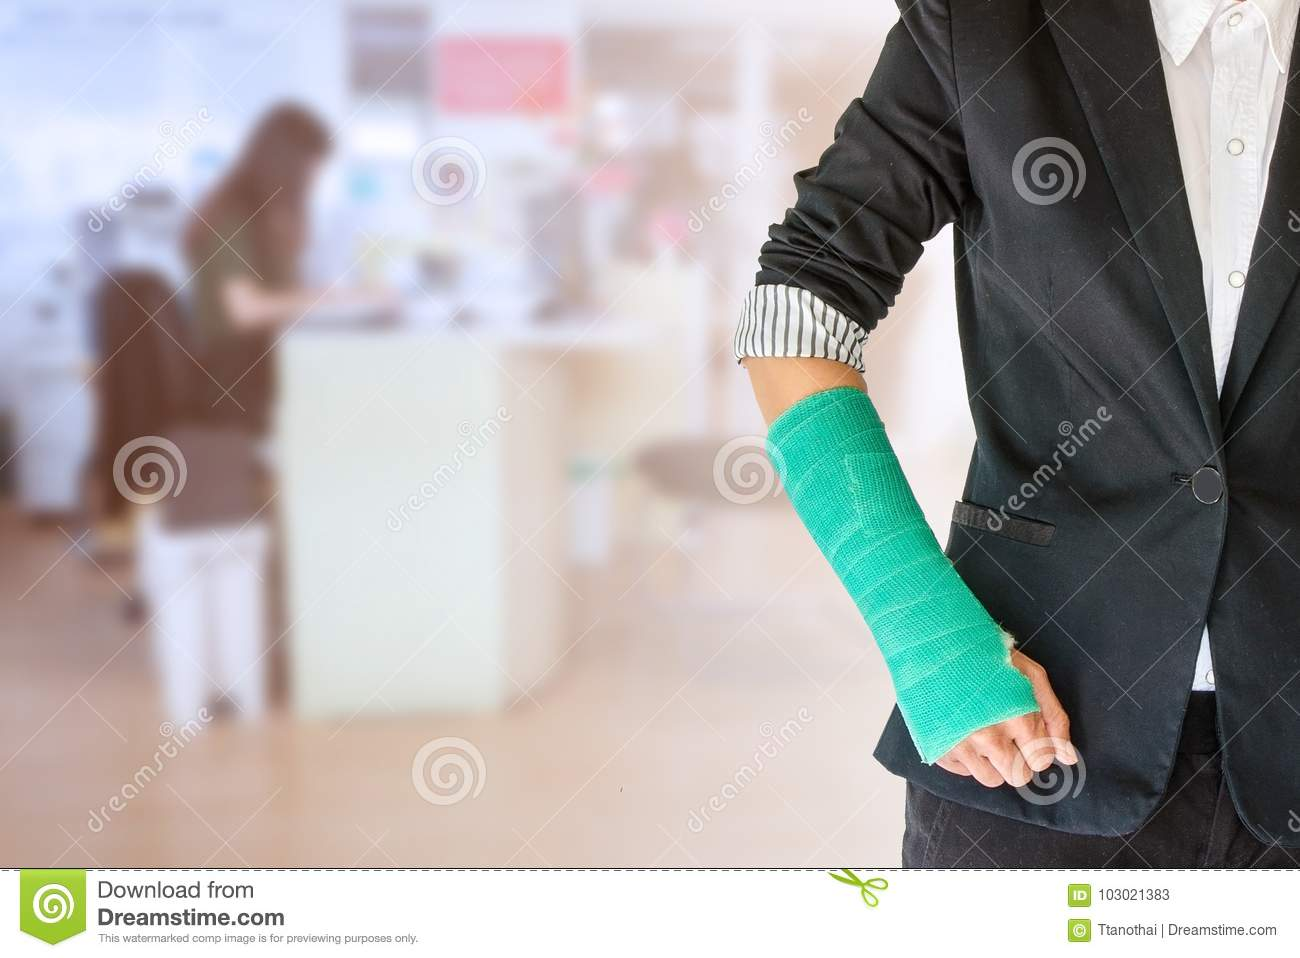 Worker Woman Accident On Arm With Green Arm Cast On Blurred